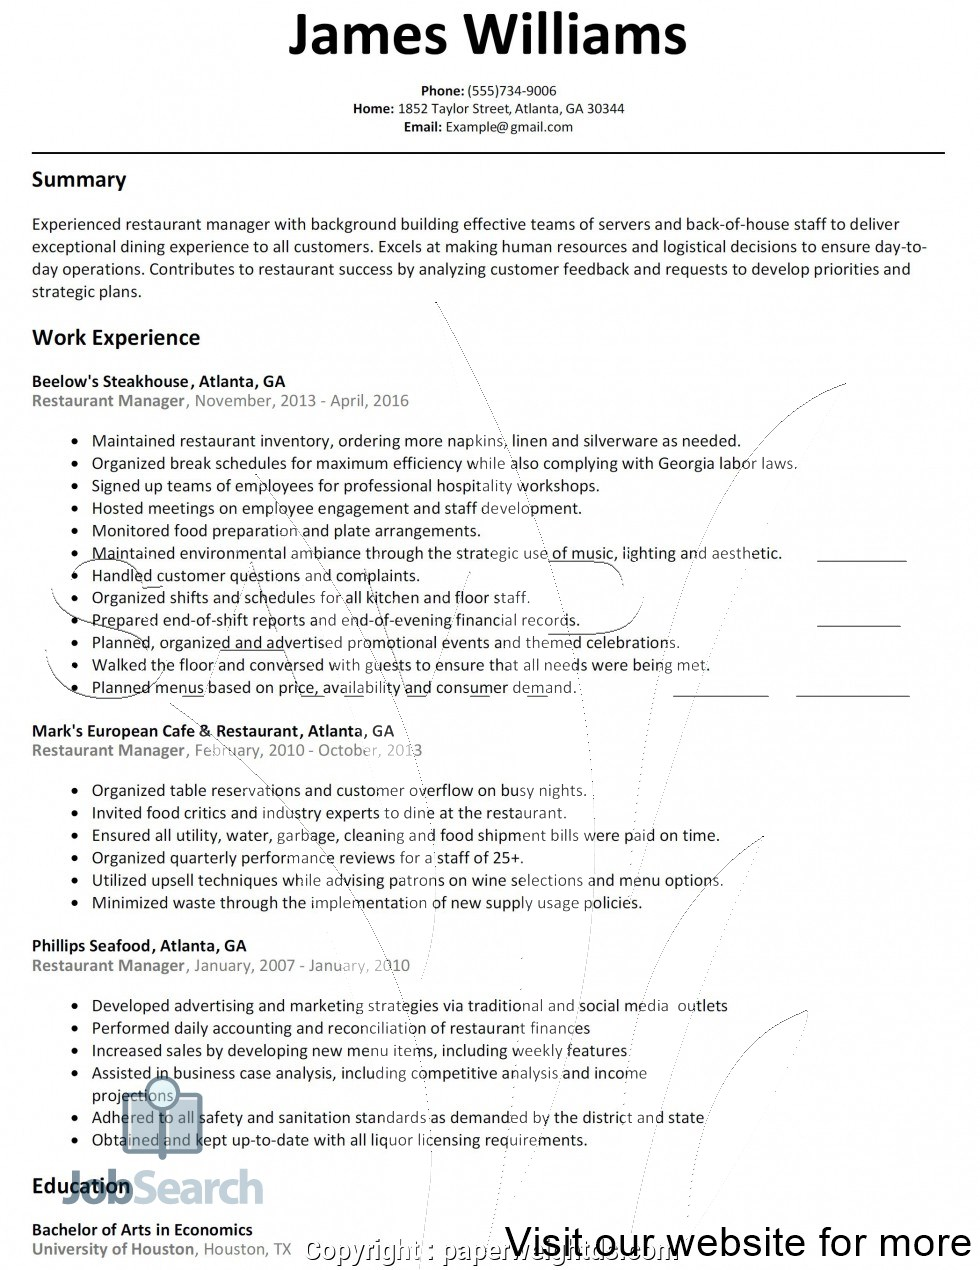 assistant manager restaurant duties resume for sample objective tourism students Resume Cafe Manager Duties For Resume